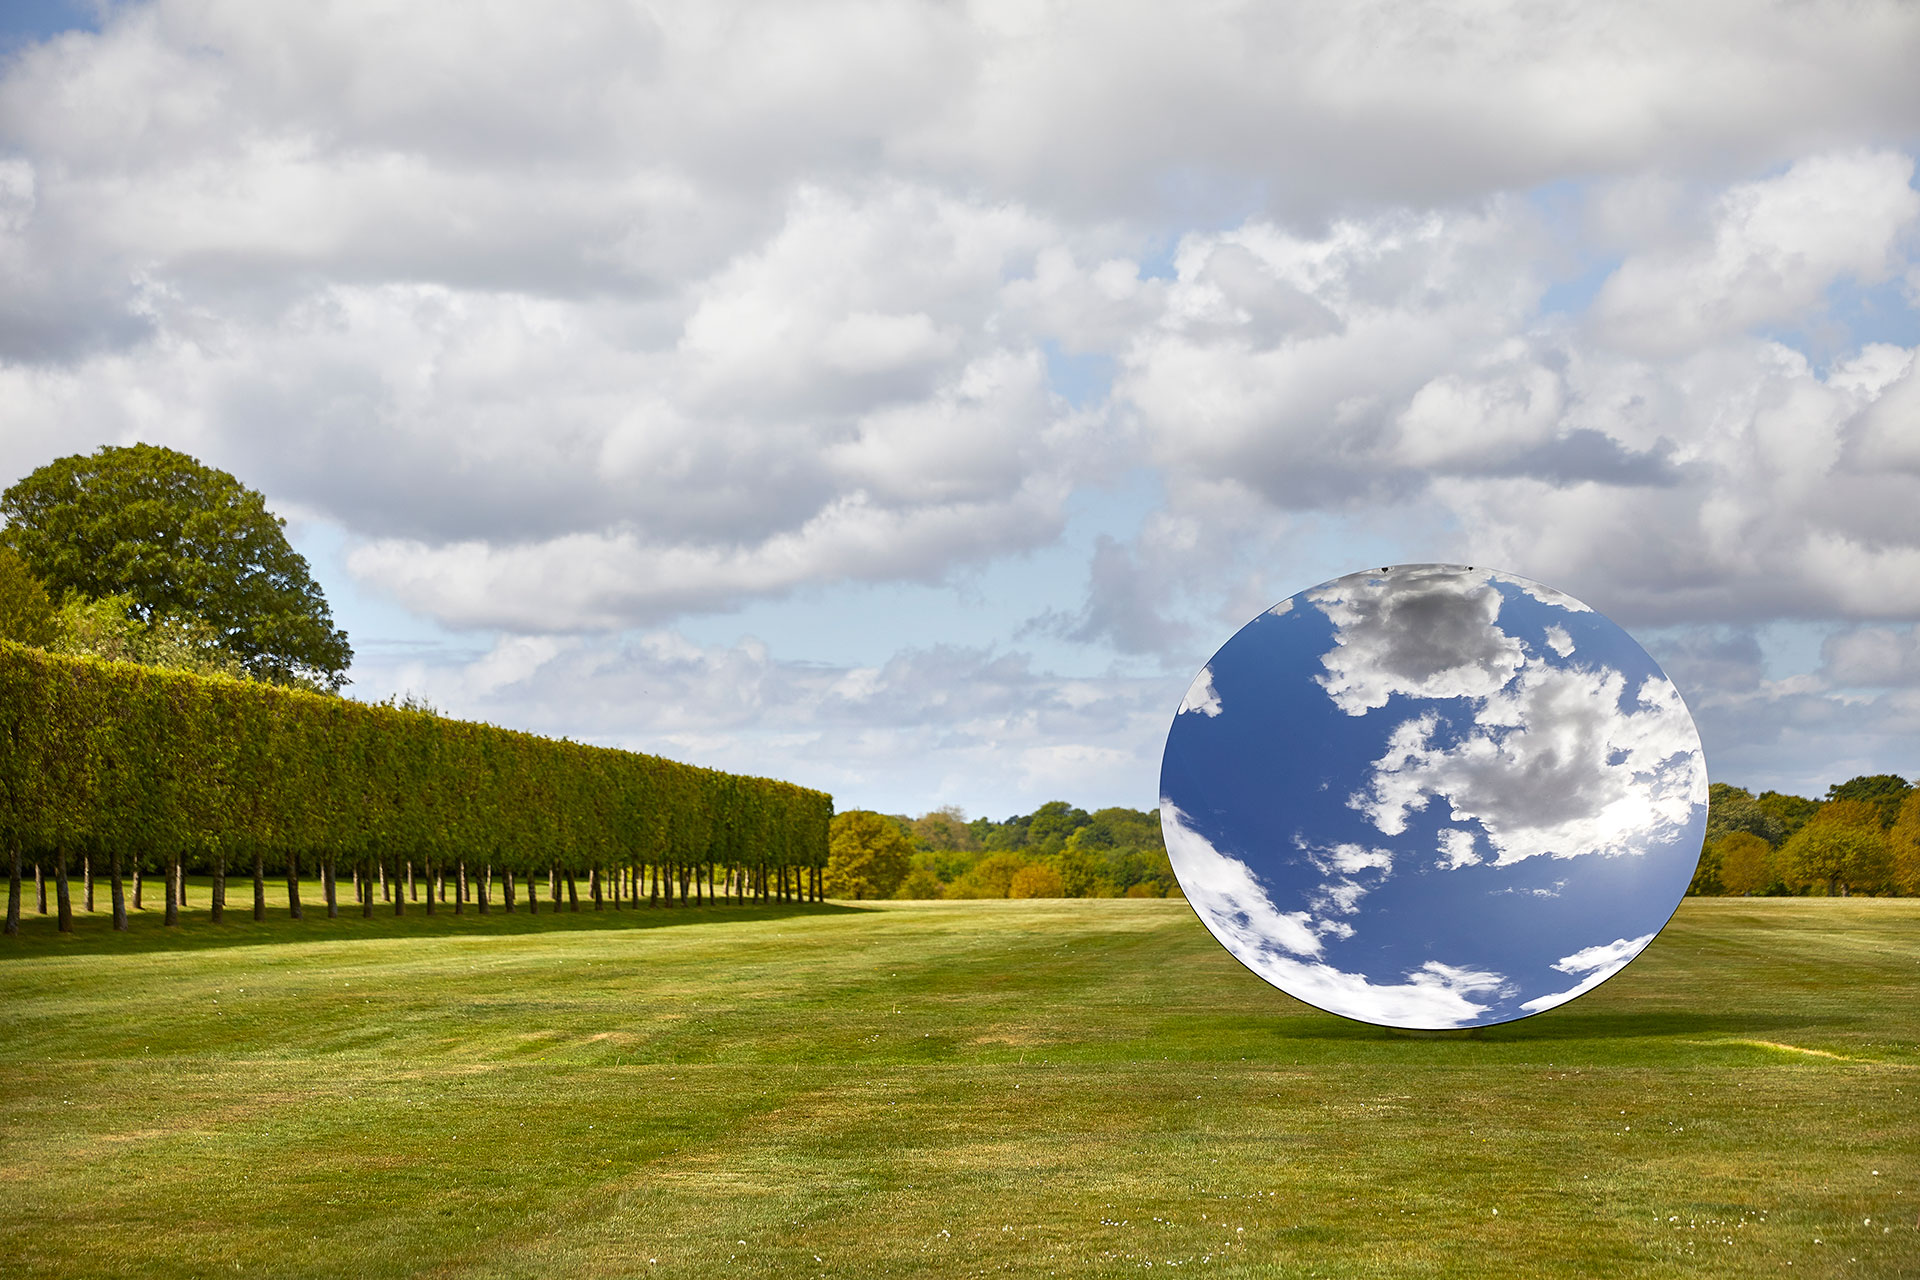 Exhibition view, Anish Kapoor at Houghton Hall. © Anish Kapoor. All rights reserved DACS, 2020. Photo by Pete Huggins. Featured: Sky Mirror, 2018, stainless steel. Courtesy the artist and Lisson Gallery.